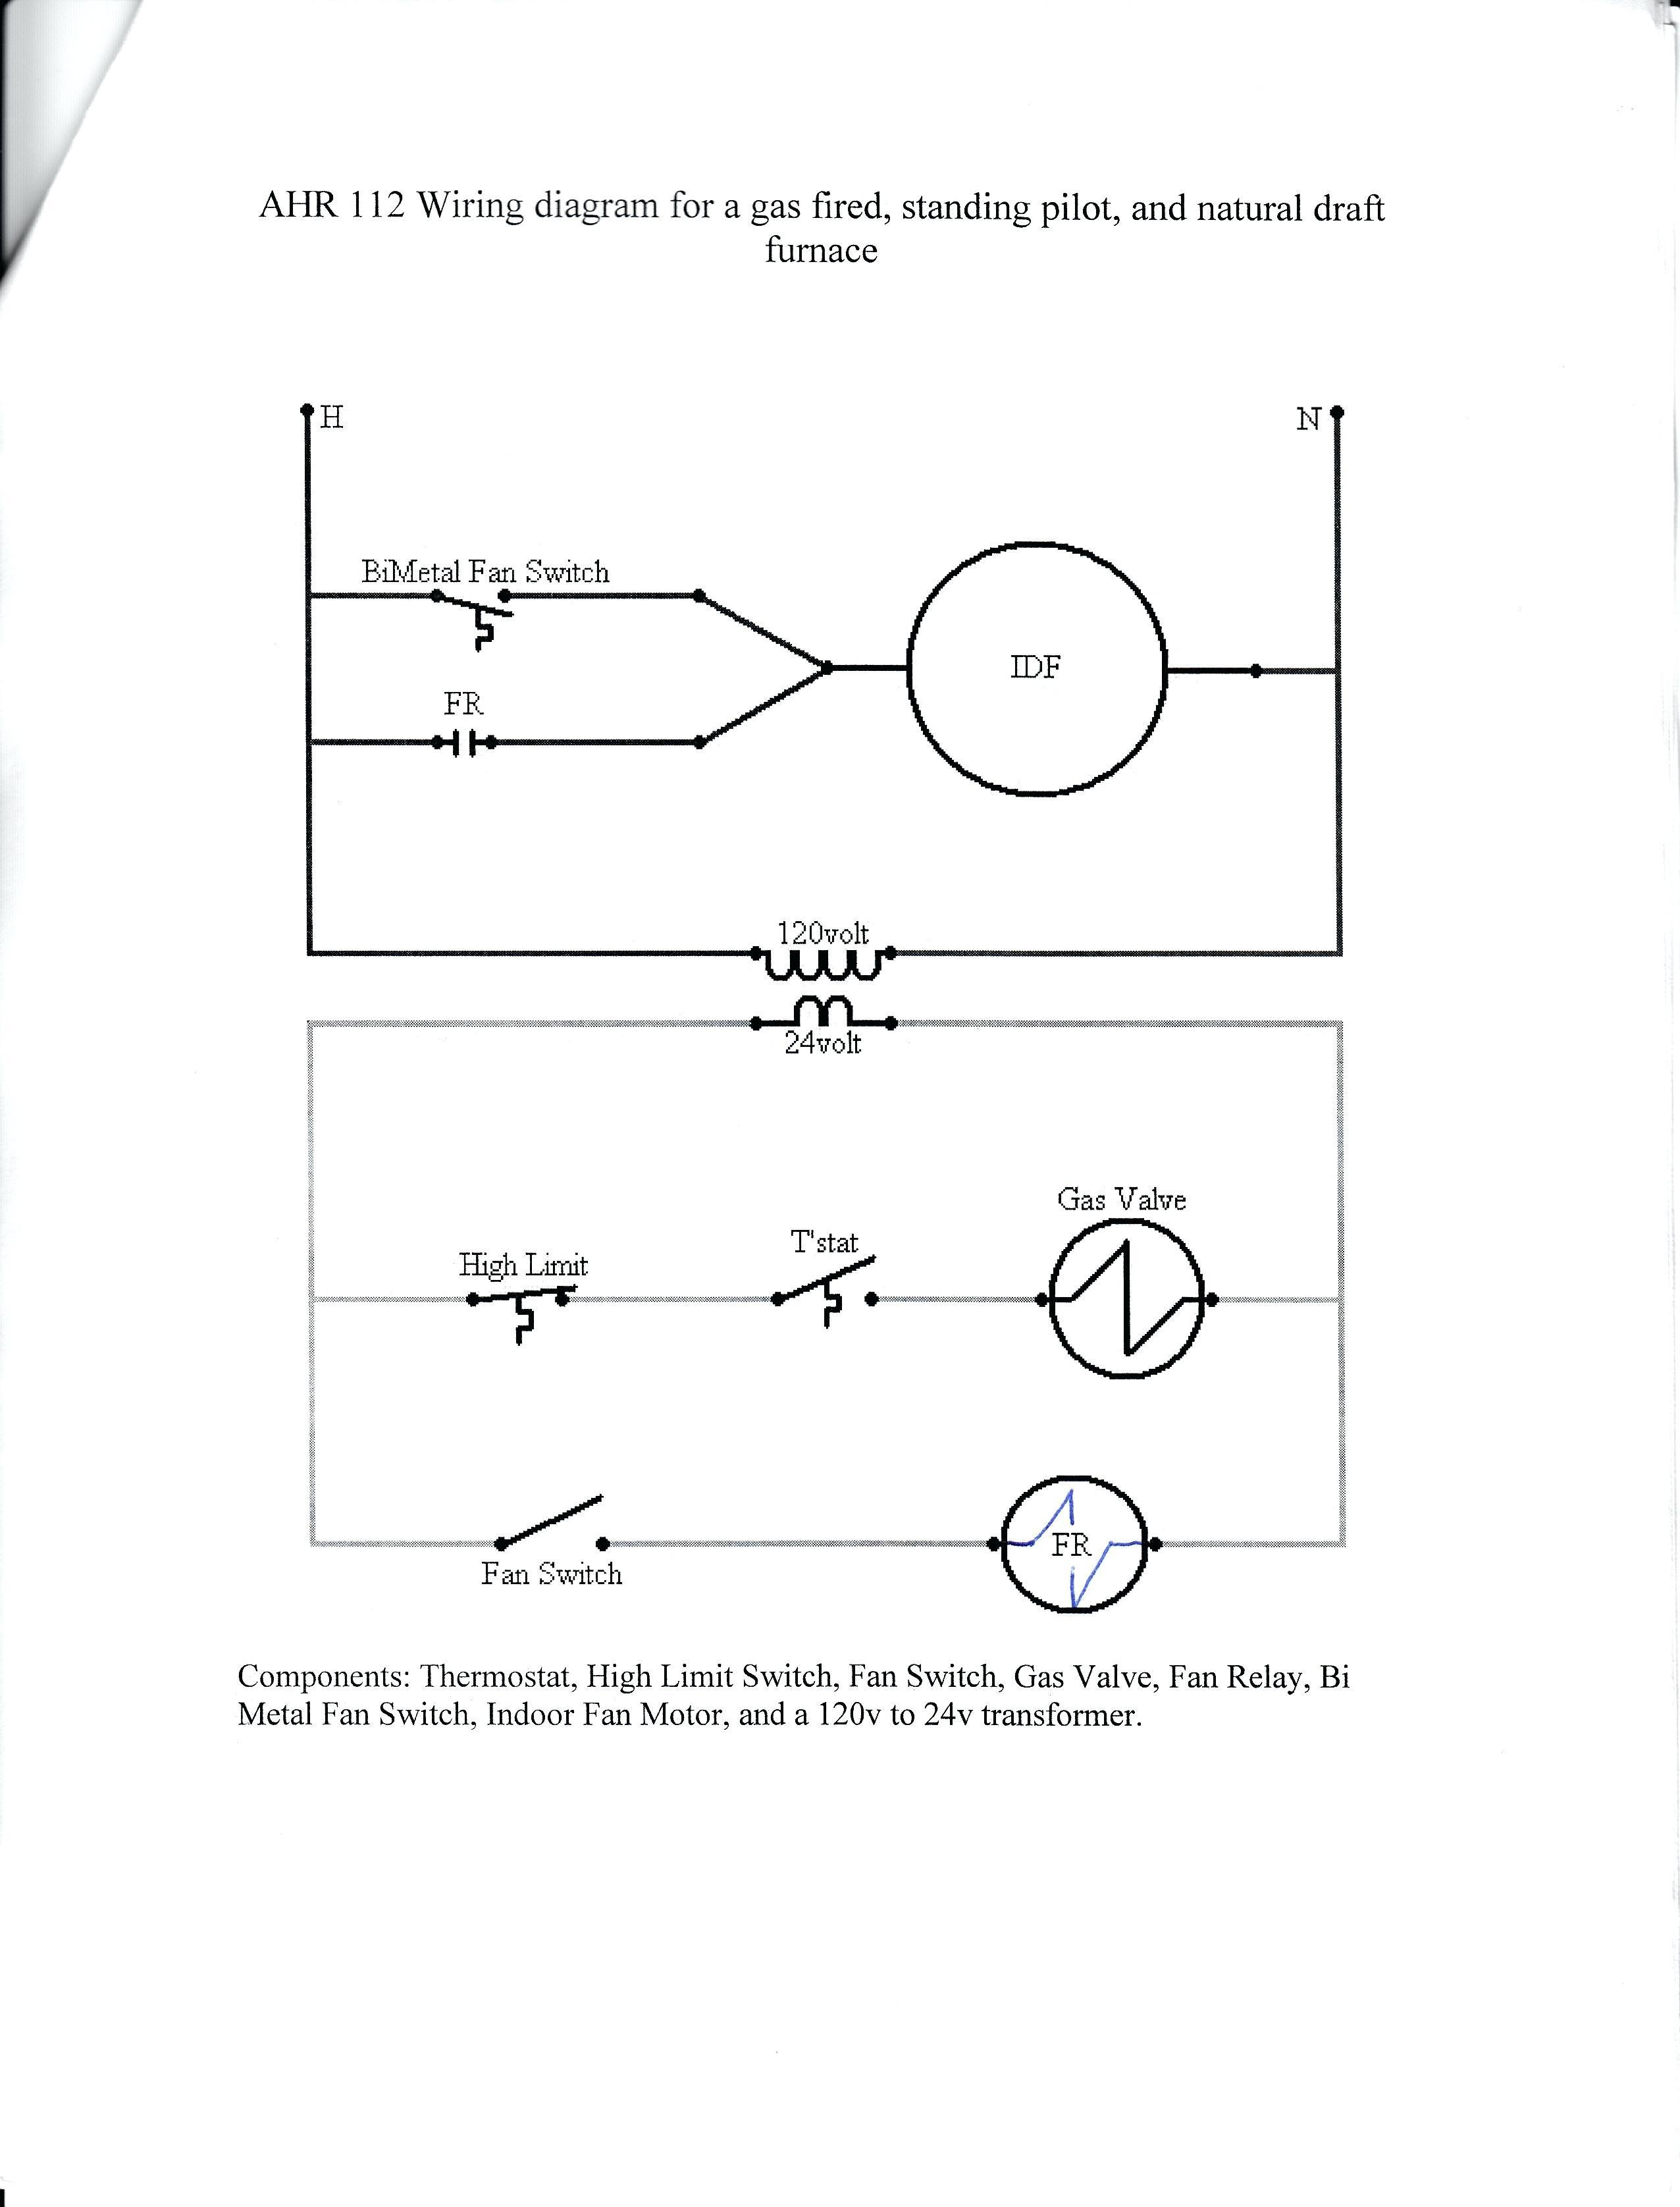 honeywell fan center relay wiring diagram wiring diagram z4honeywell fan wiring diagram honeywell fan center relay [ 2552 x 3352 Pixel ]